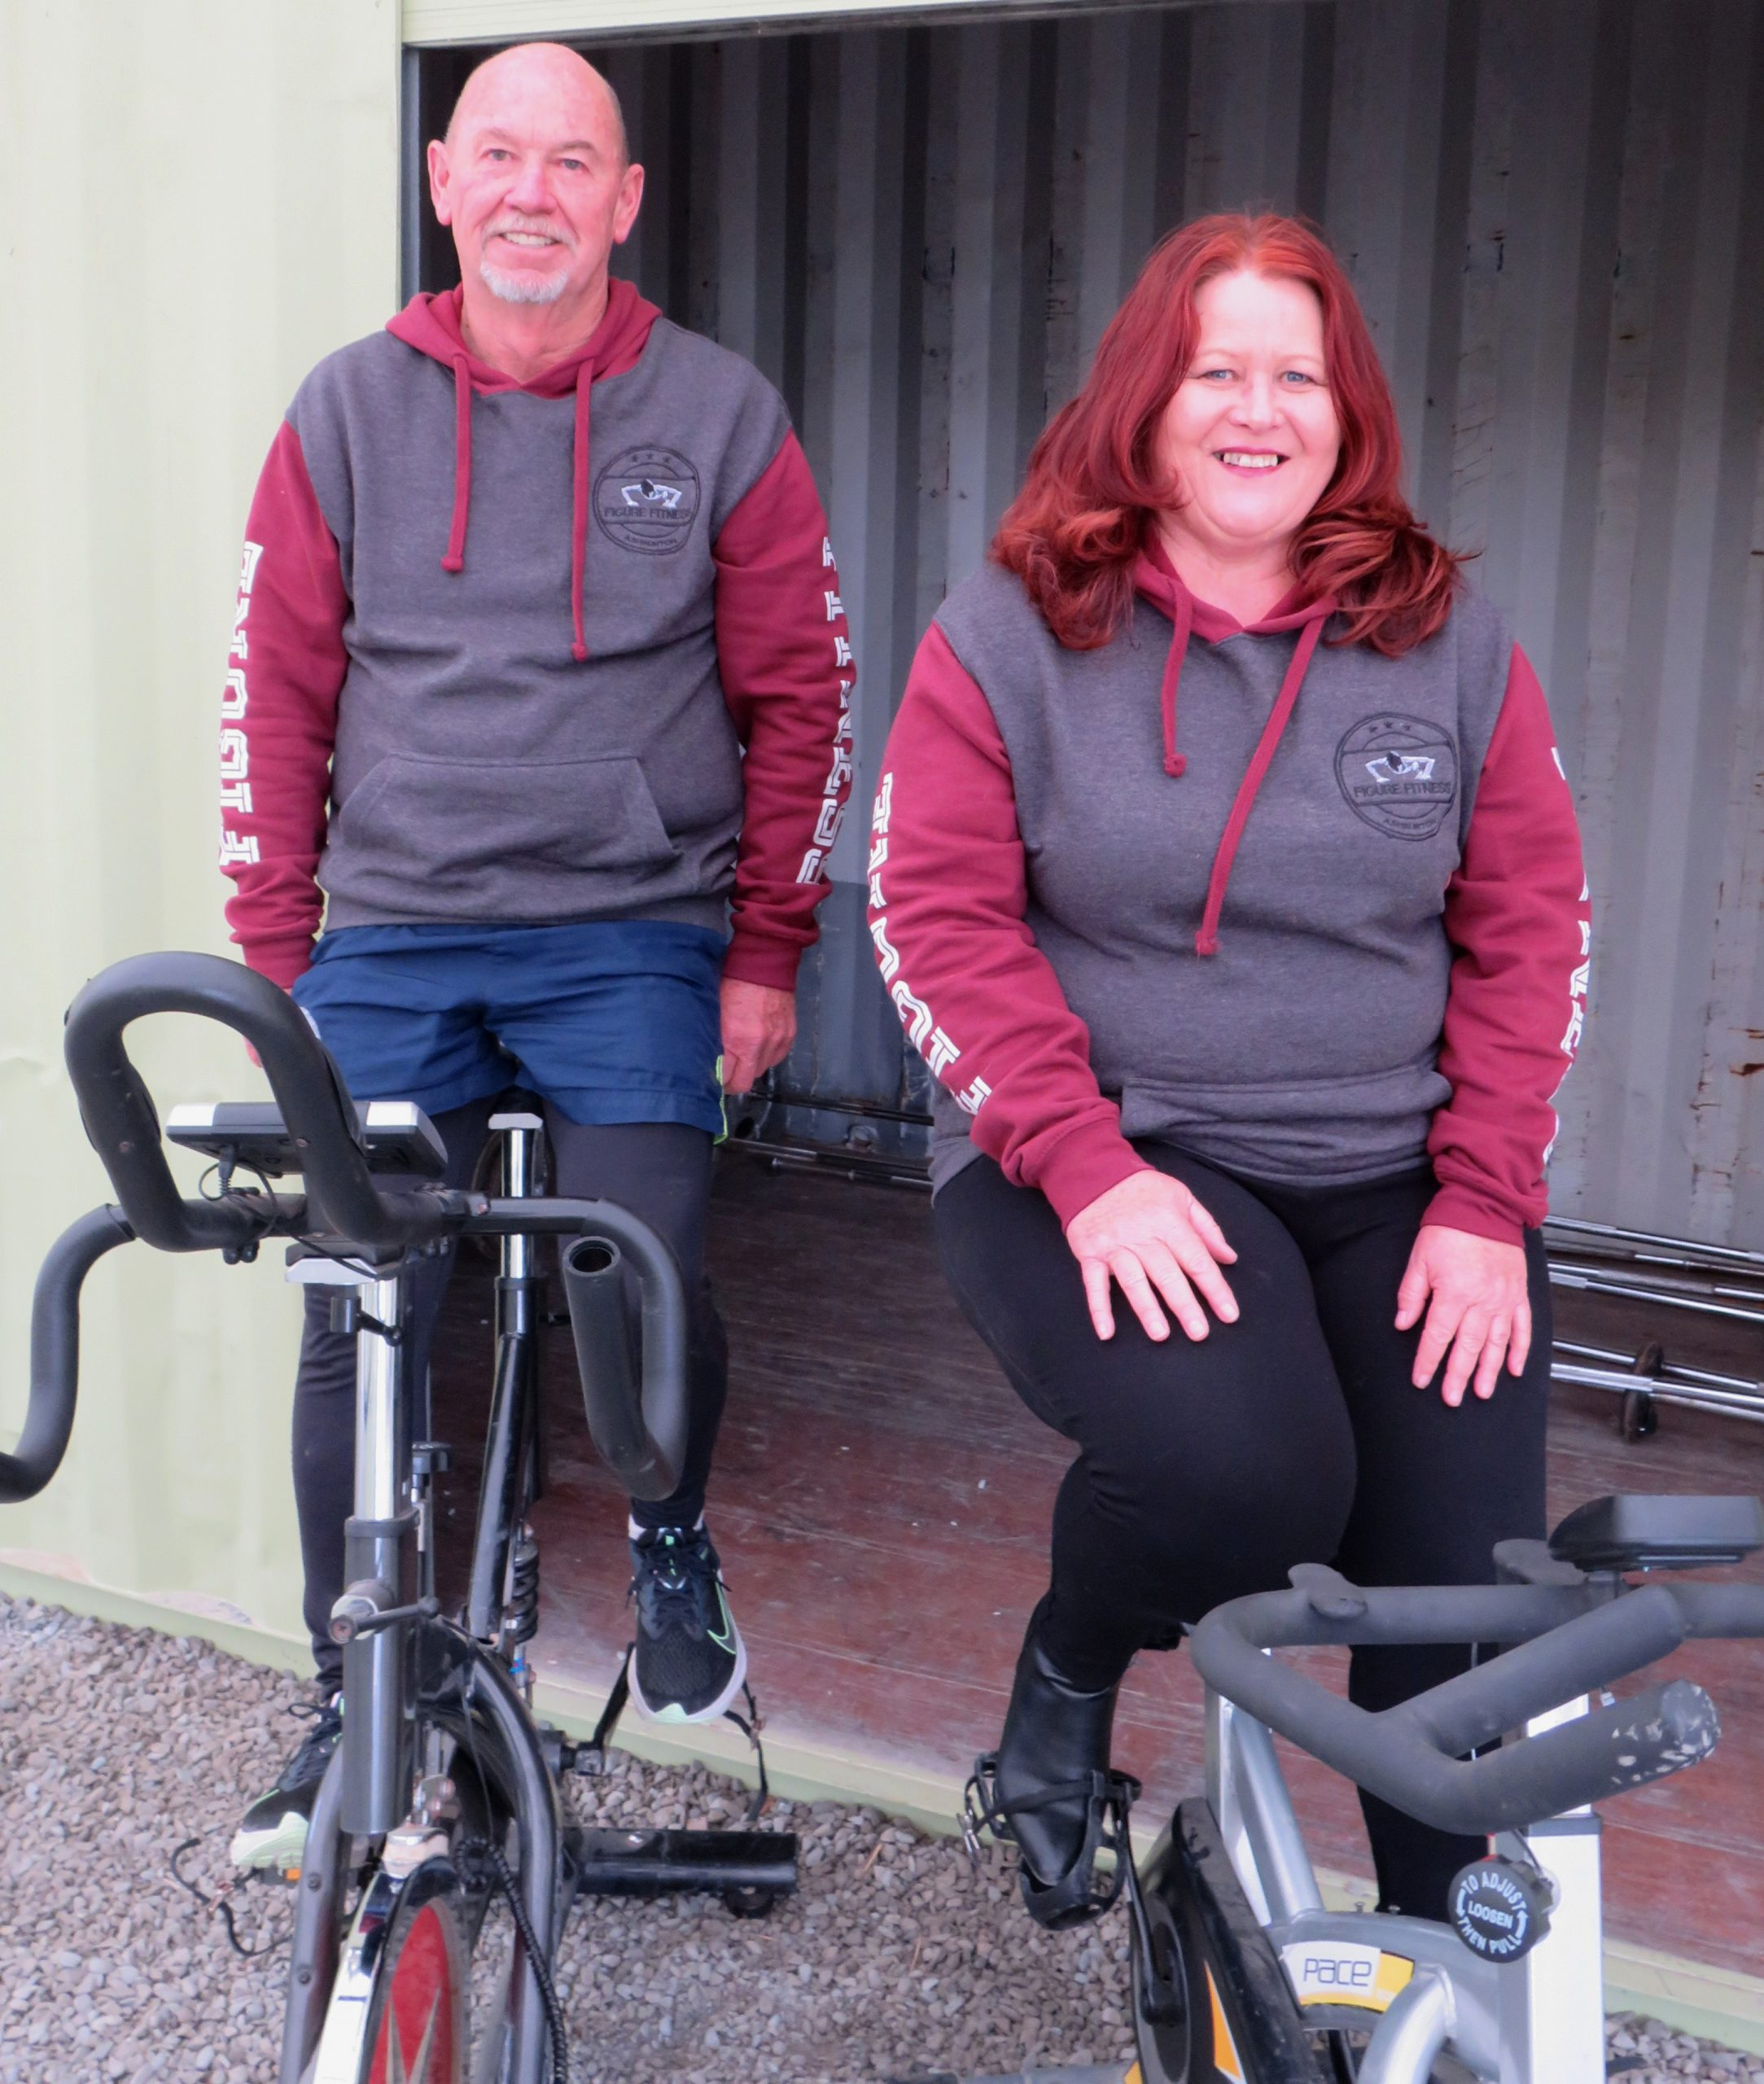 Stu and Debbie Phipps have taken over Figure Fitness Ashburton. Photo: Ashburton Courier